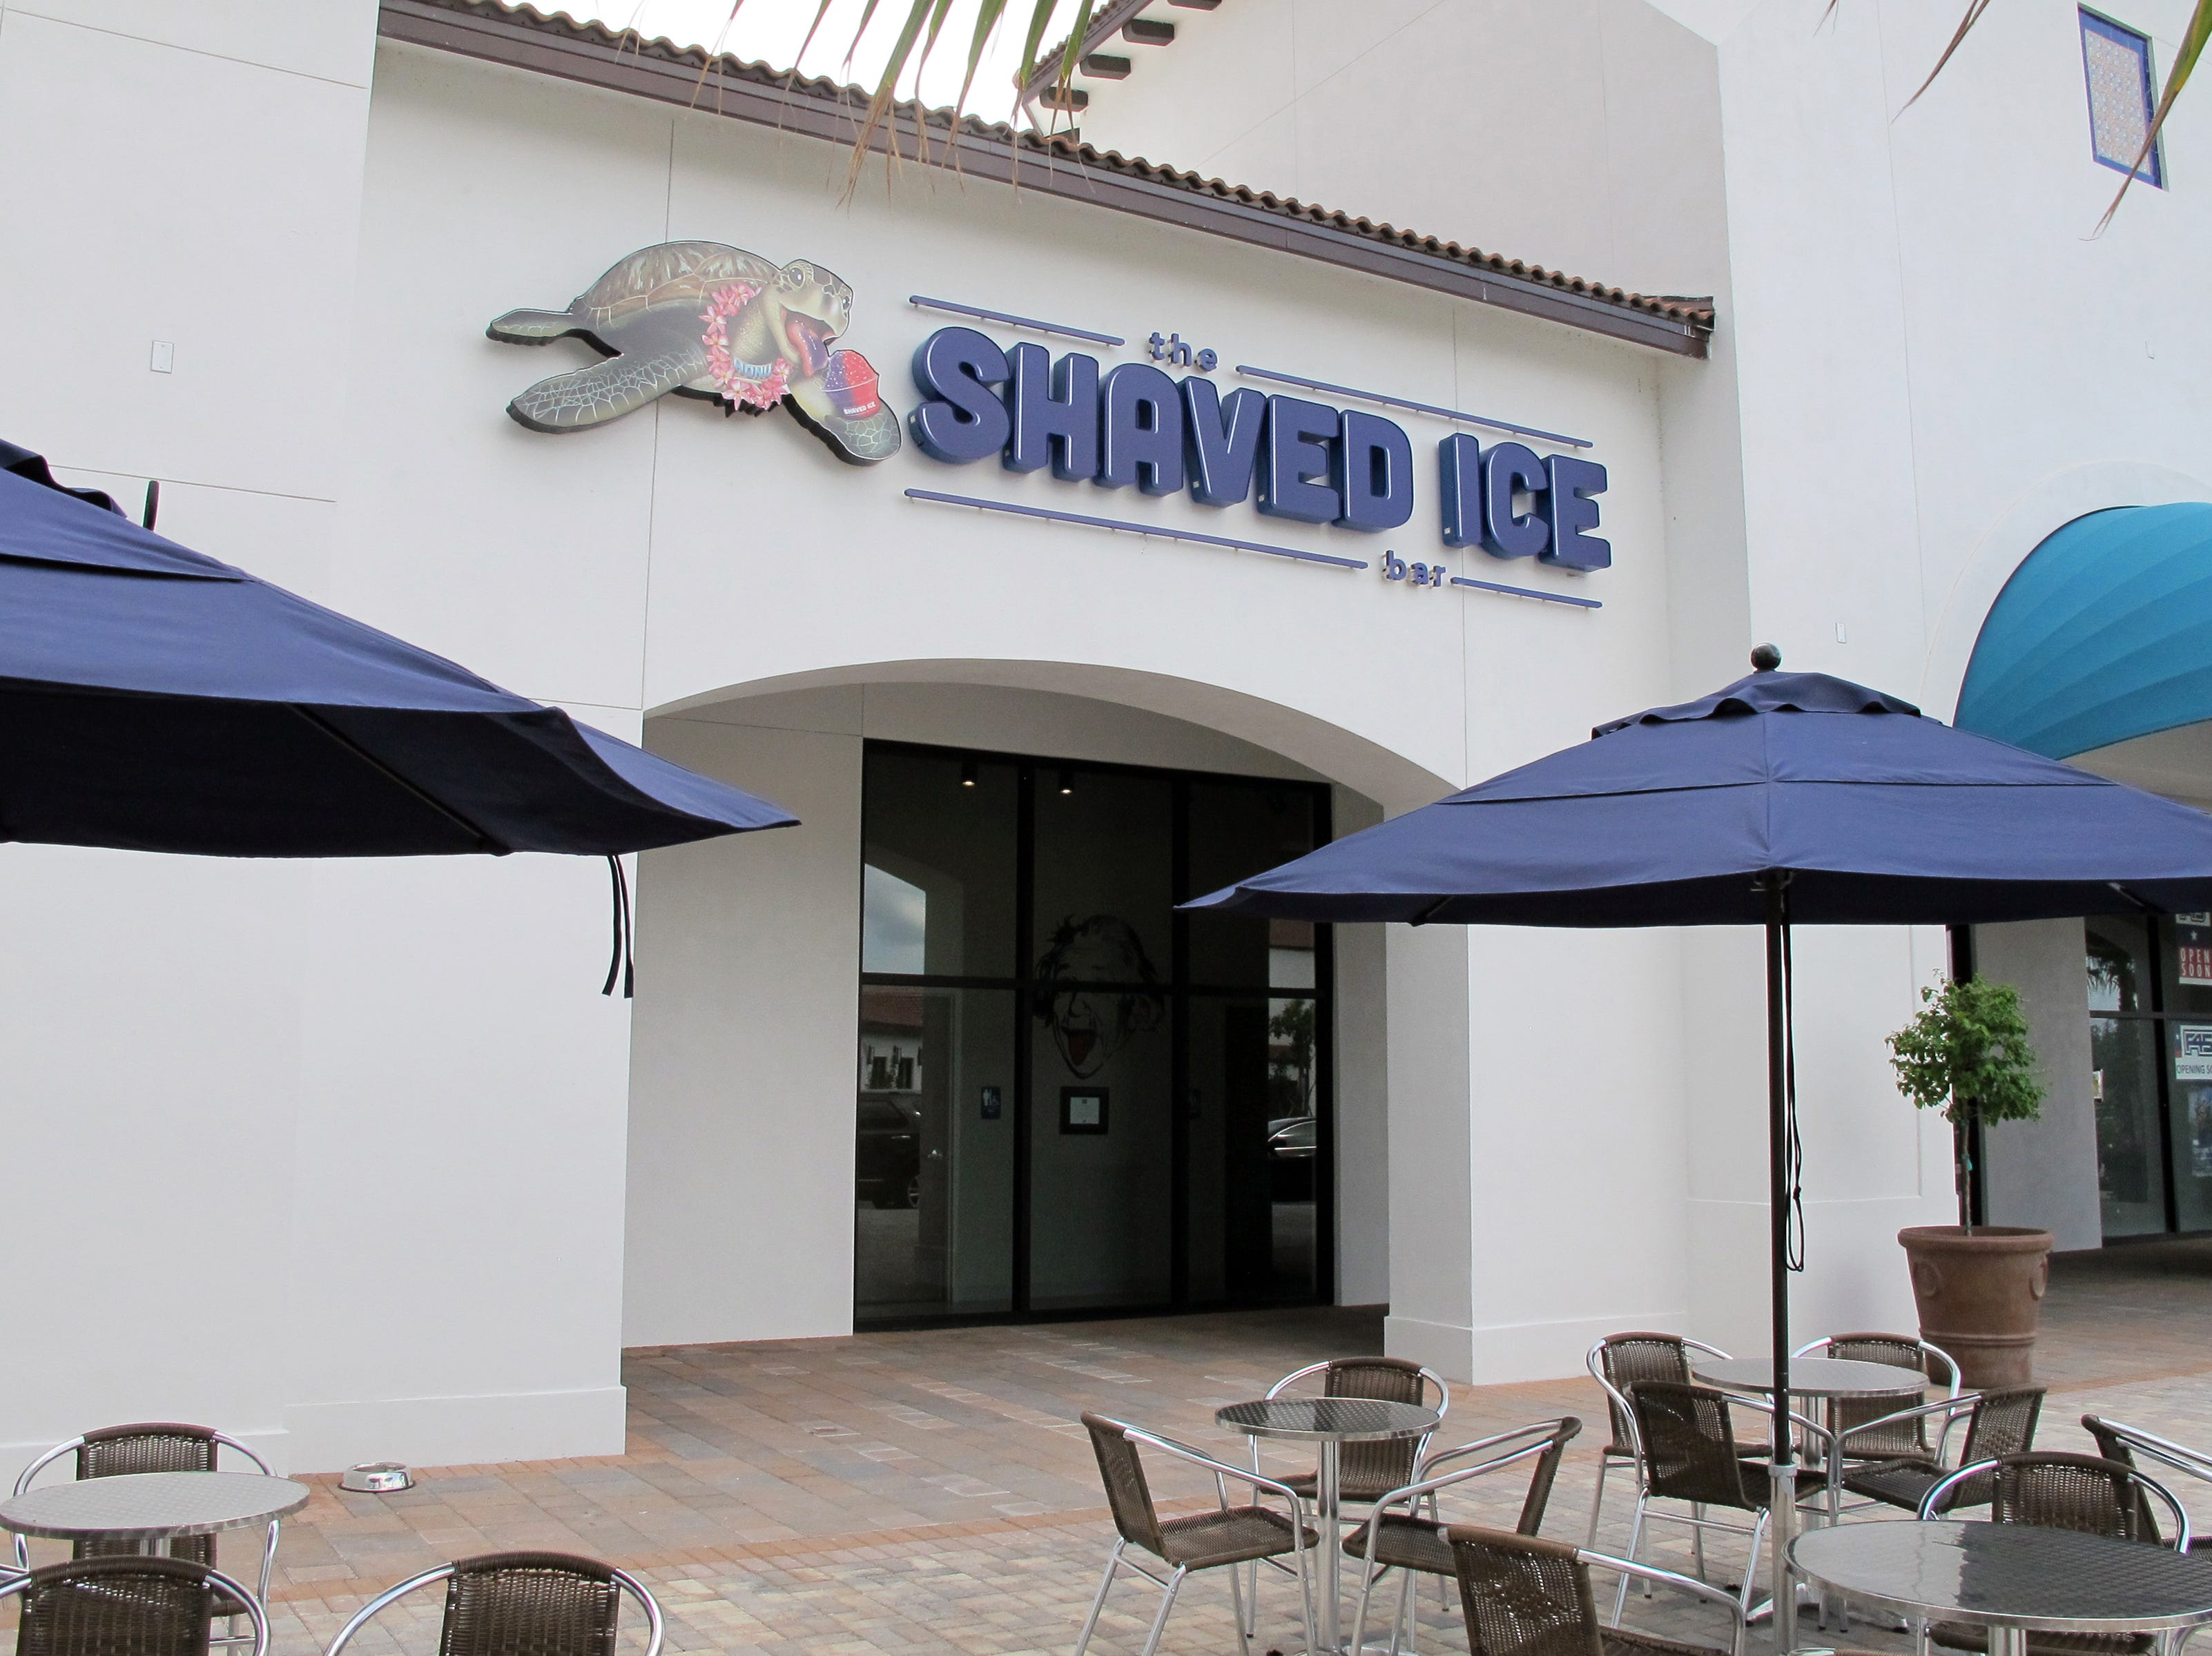 The Shaved Ice Bar opened in spring 2018 in the new University Village shops on Ben Hill Griffin Parkway near Florida Gulf Coast University.